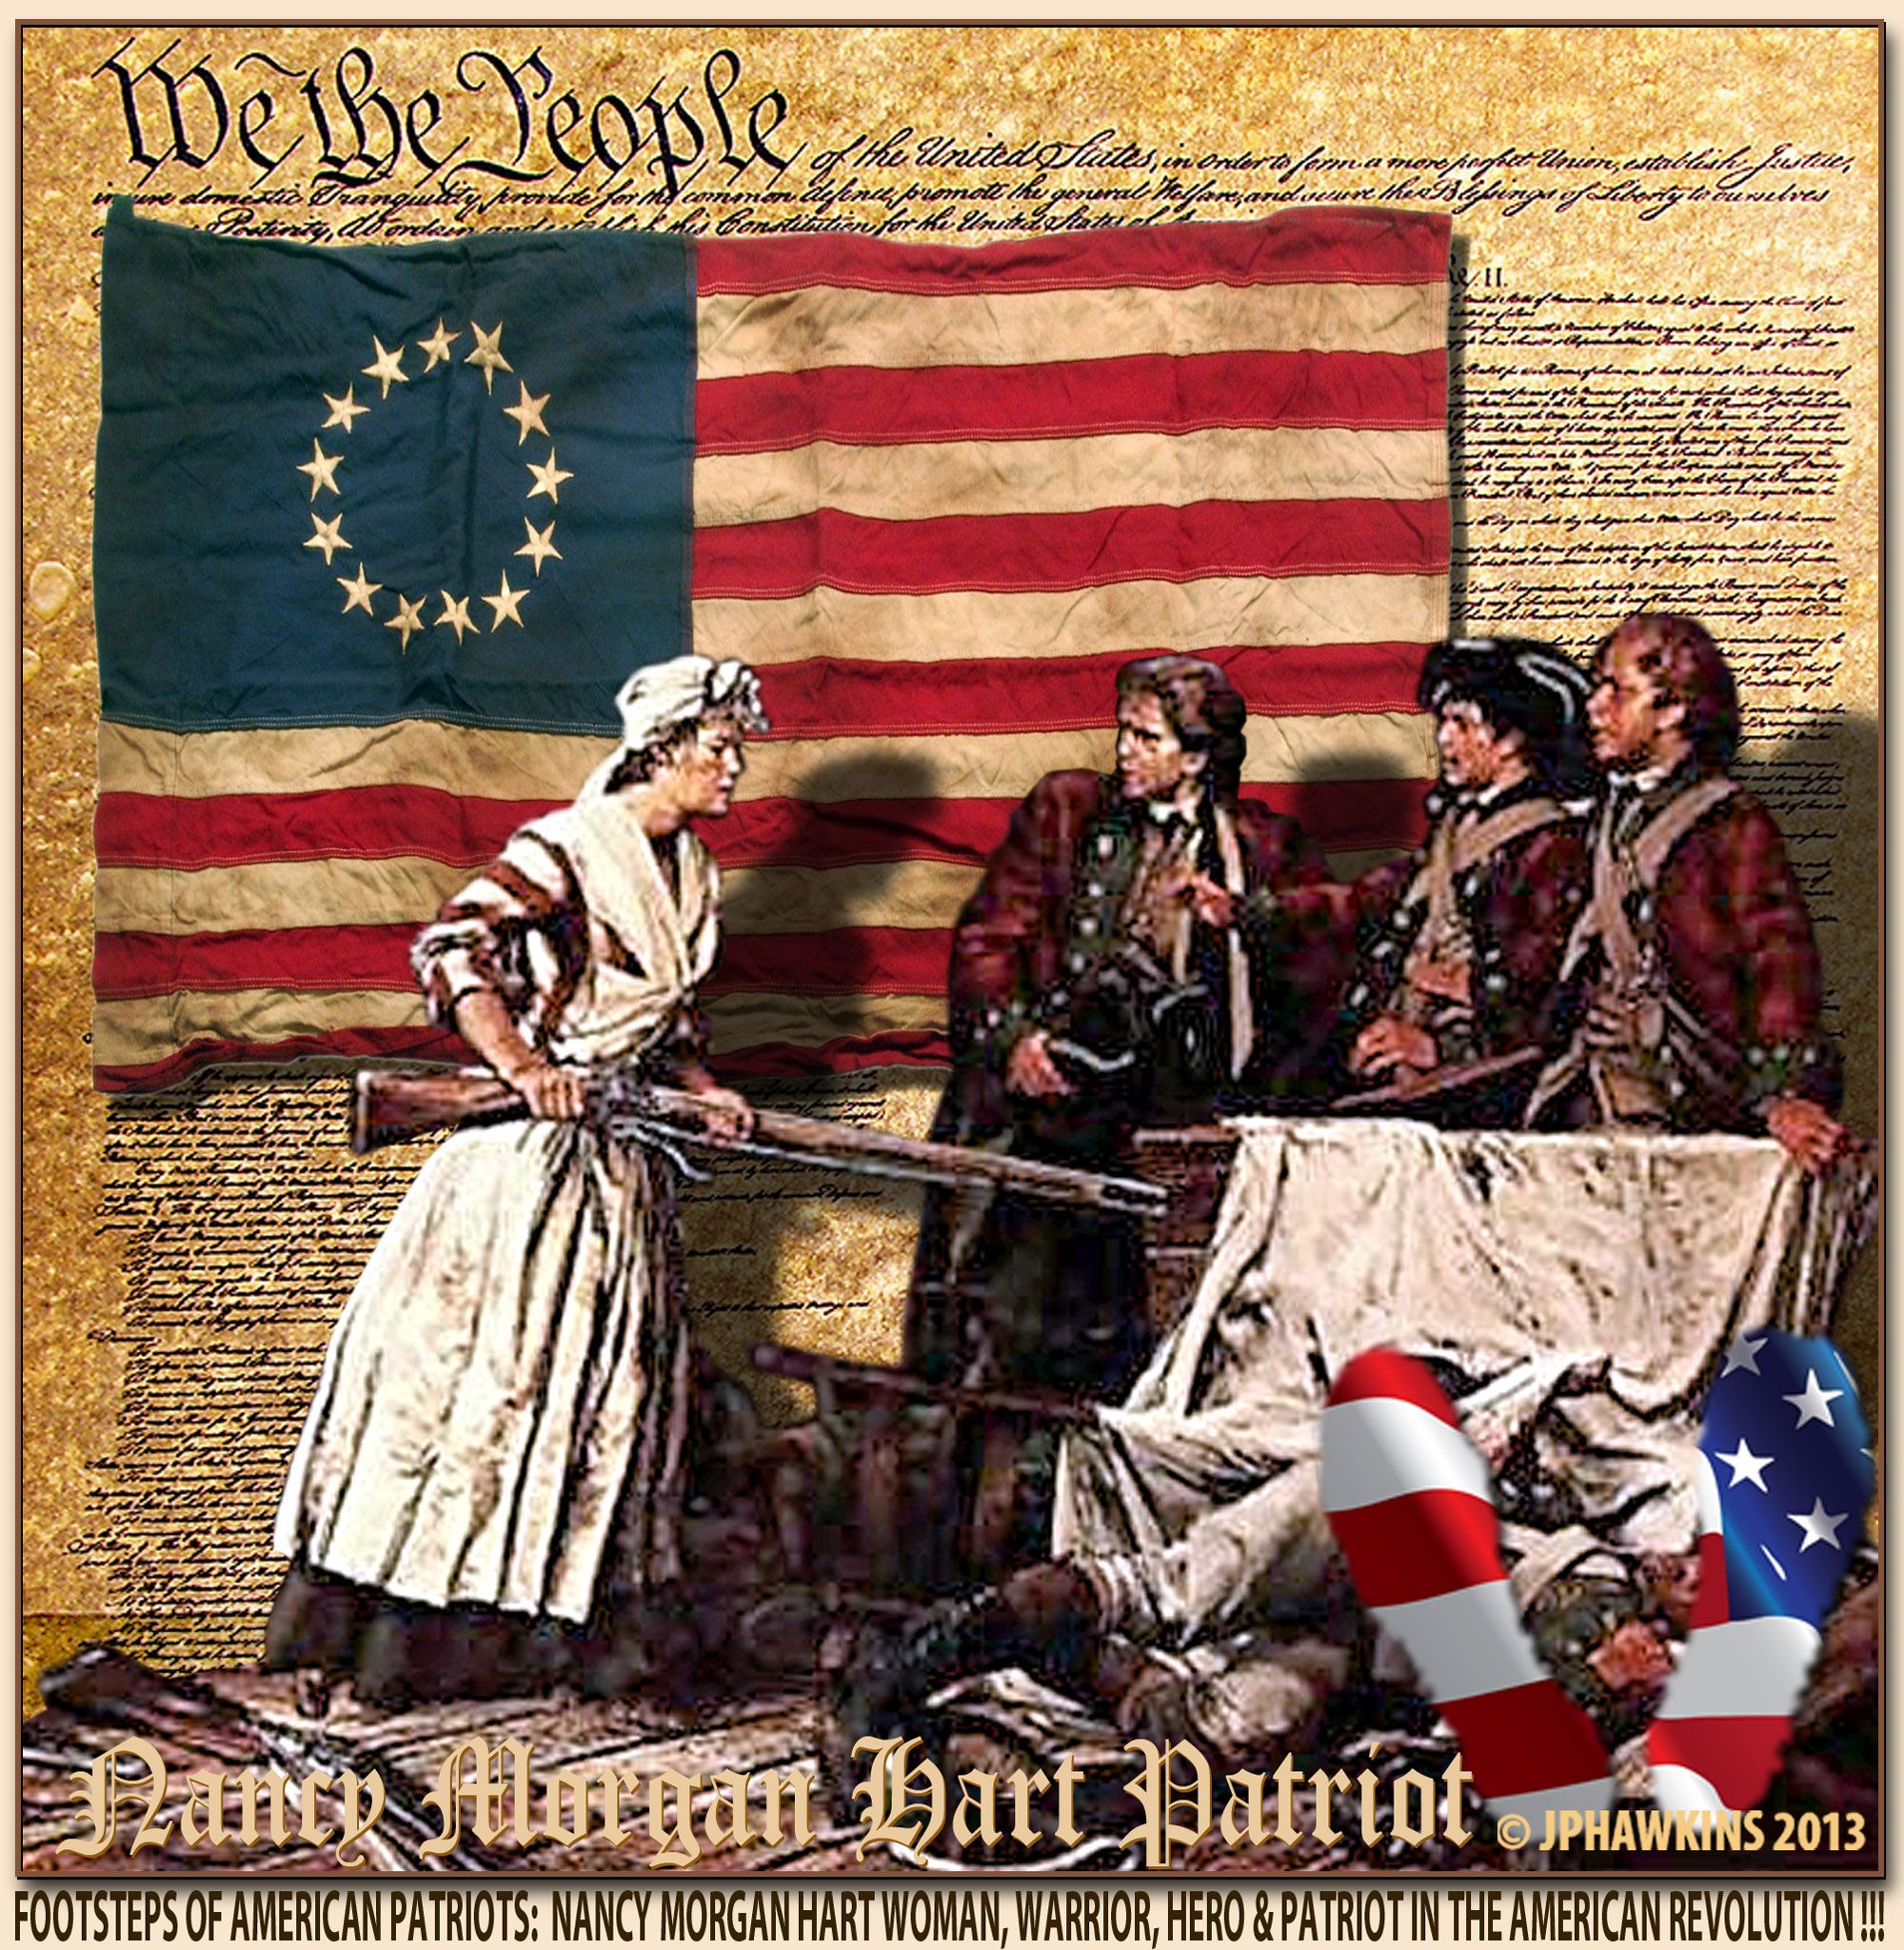 Pin By Don Petrie On U S History In The Footsteps Of American Patriots American Revolutionary War American War American War Of Independence